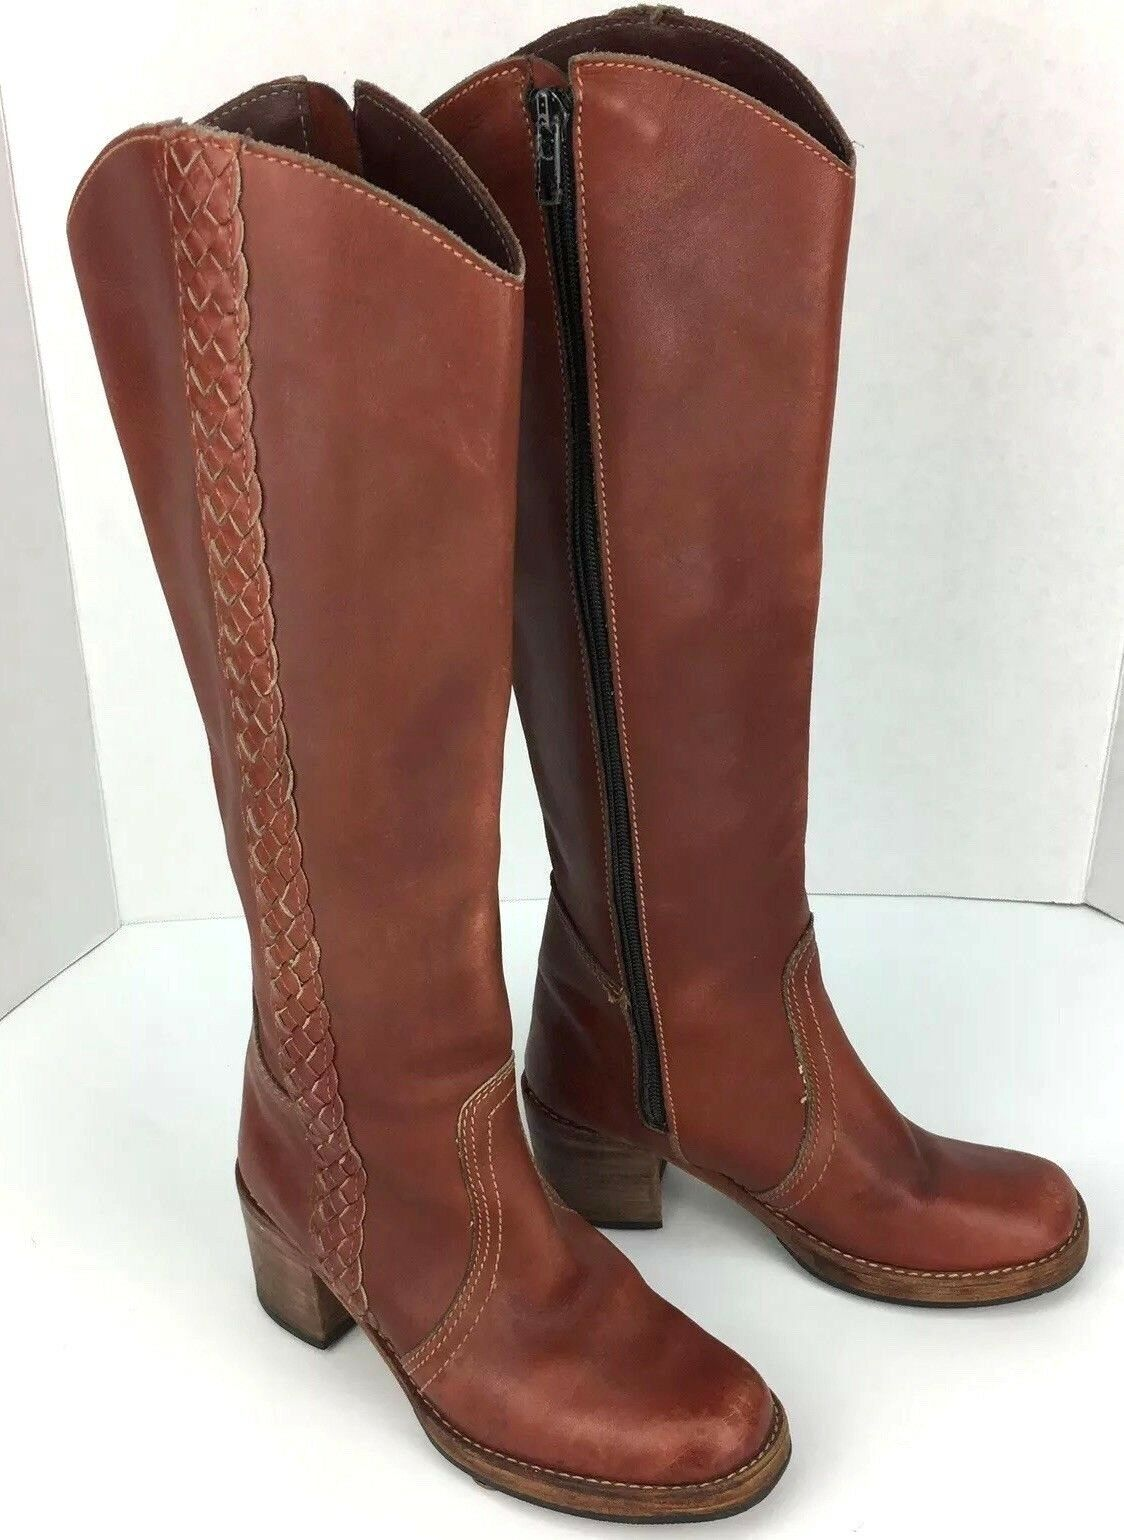 Womens Size 6 M Leather Boots Tall Zip Side Braid Red orange Heel Vintage